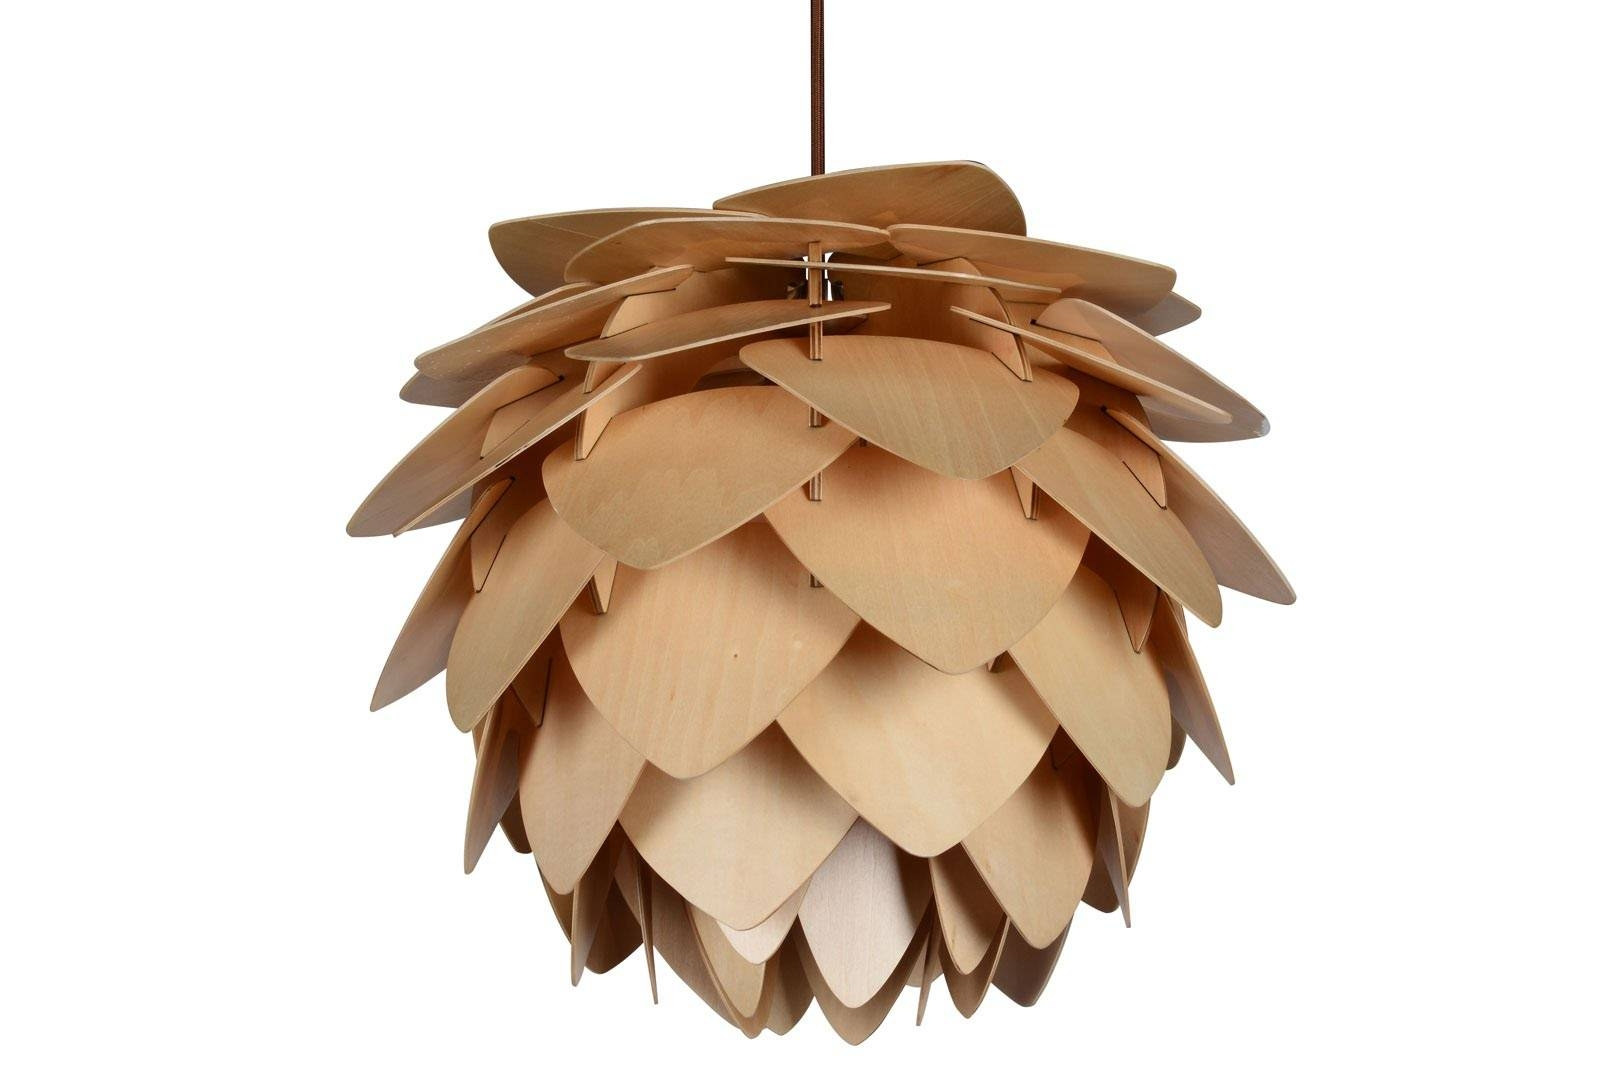 Buy Wood Pendant Light In Melbourne [Pinecone] - Youtube with Wooden Pendant Lights Melbourne (Image 5 of 15)